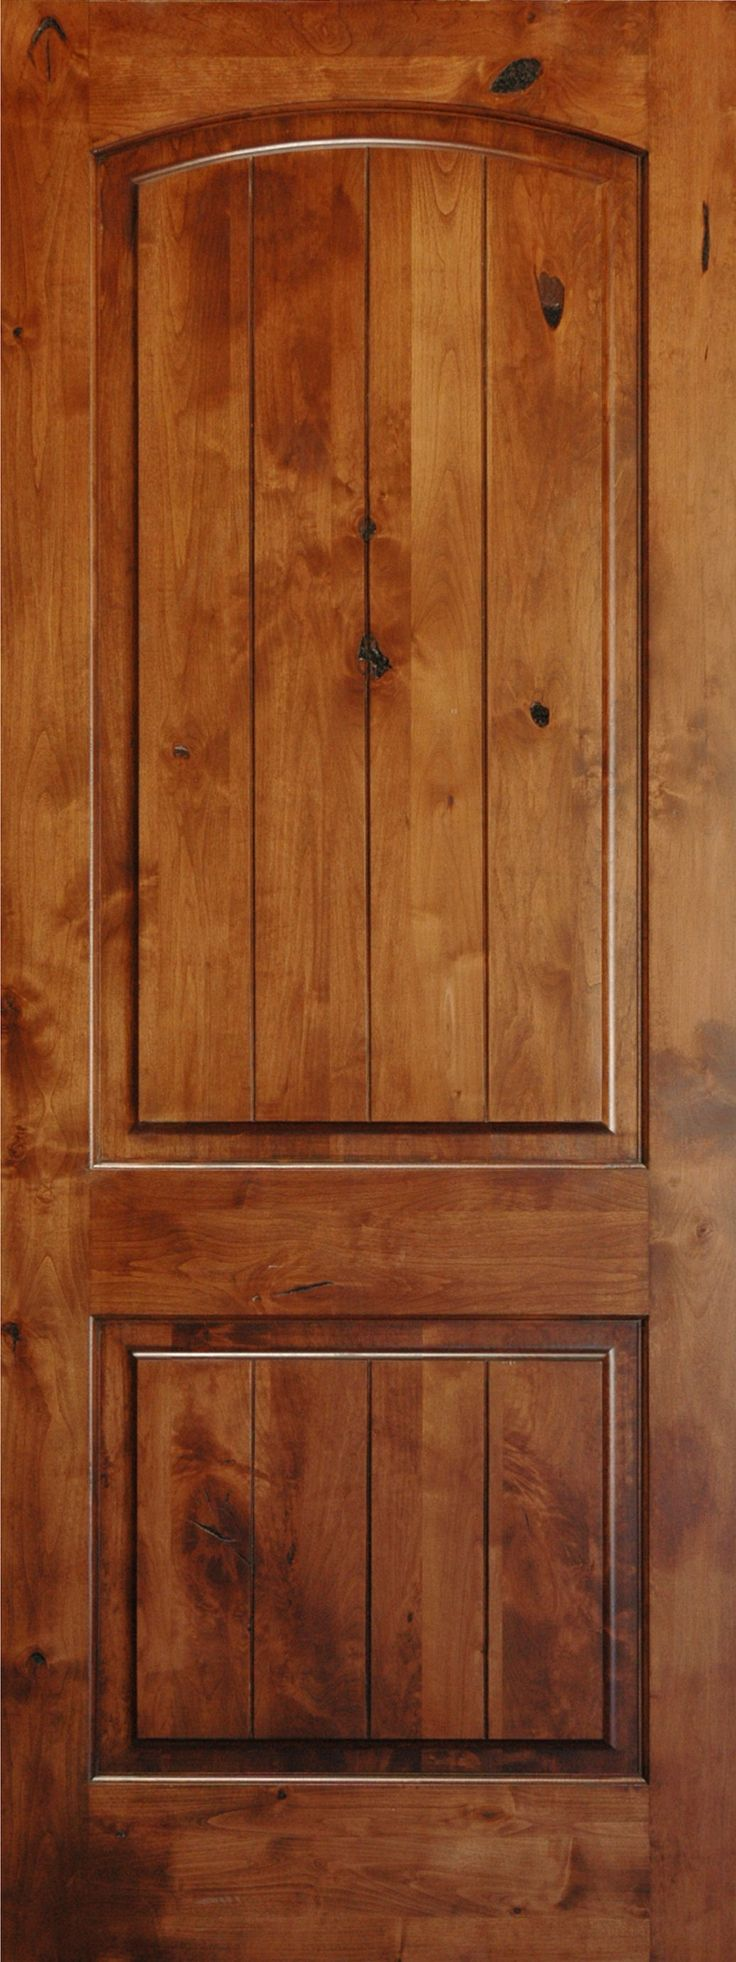 17 best interior doors wood stile rail images on pinterest knotty alder v groove arch wood interior door yep exactly the doors i want inside matches my front door planetlyrics Image collections